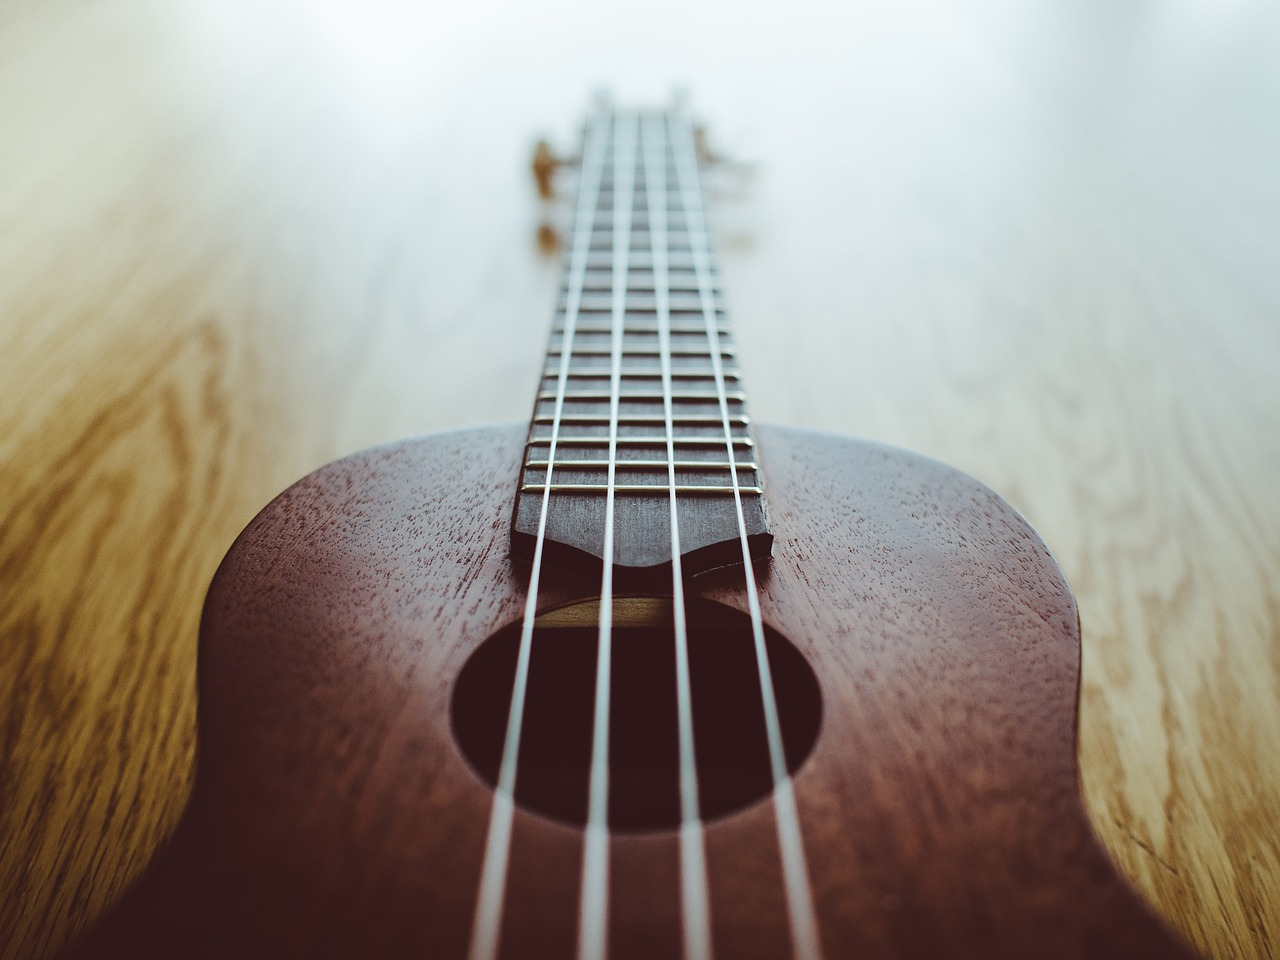 Find The Best Ukulele Strings For Your Uke!